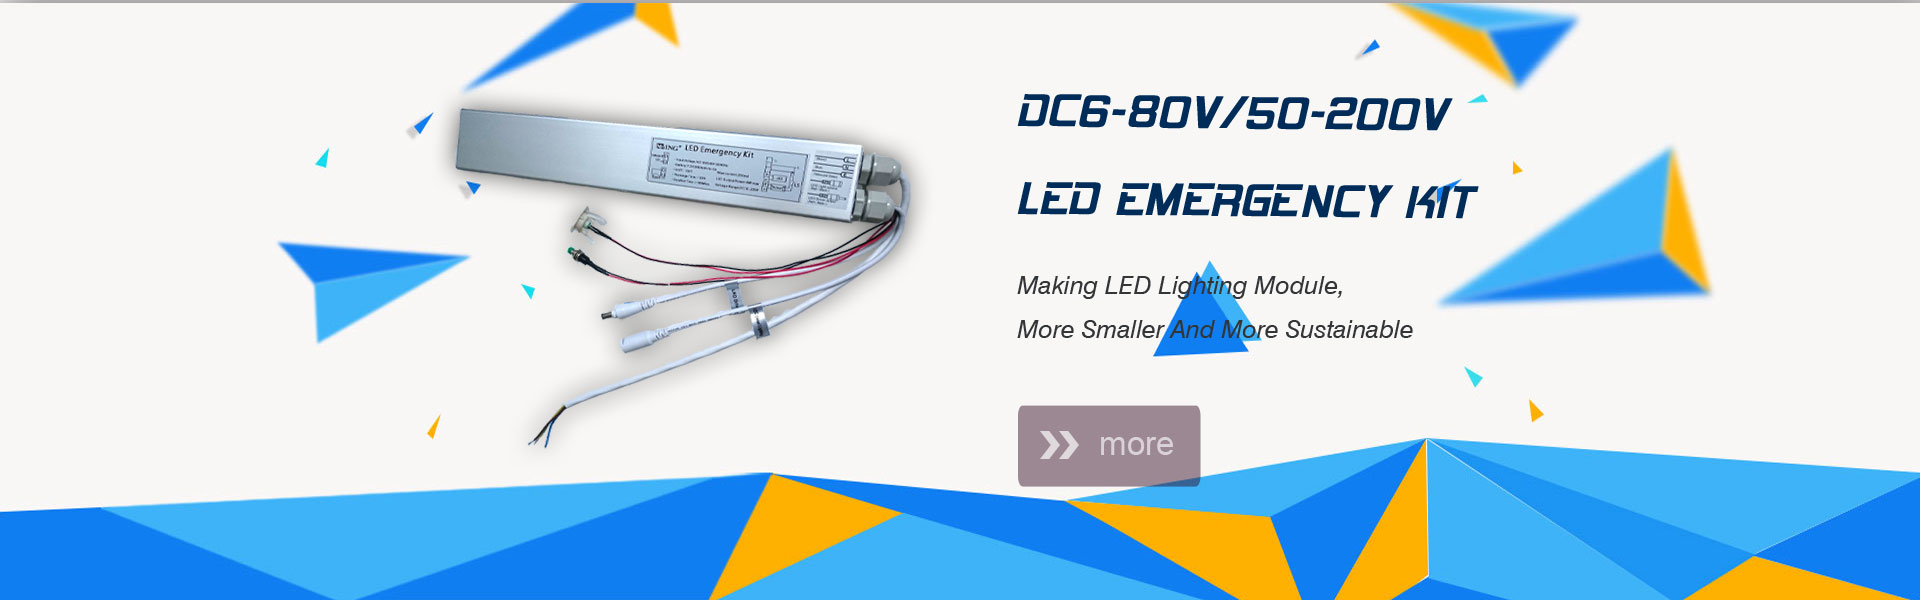 led emergency inverter